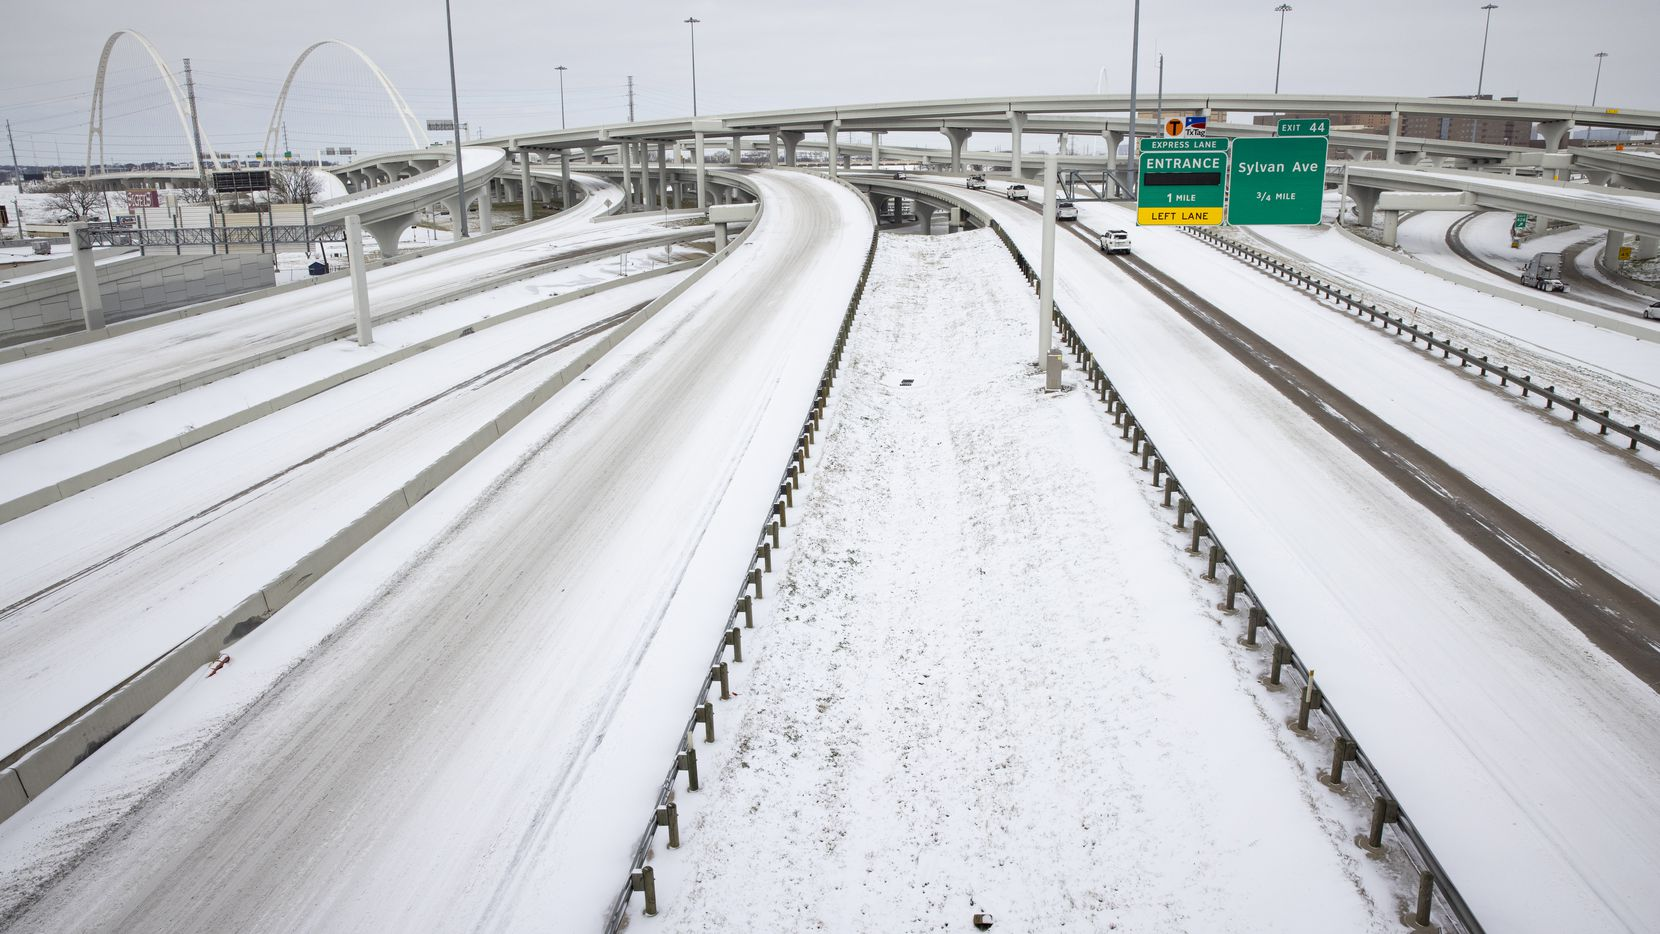 HUD ANNOUNCES DISASTER ASSISTANCE FOR VICTIMS OF TEXAS WINTER STORM